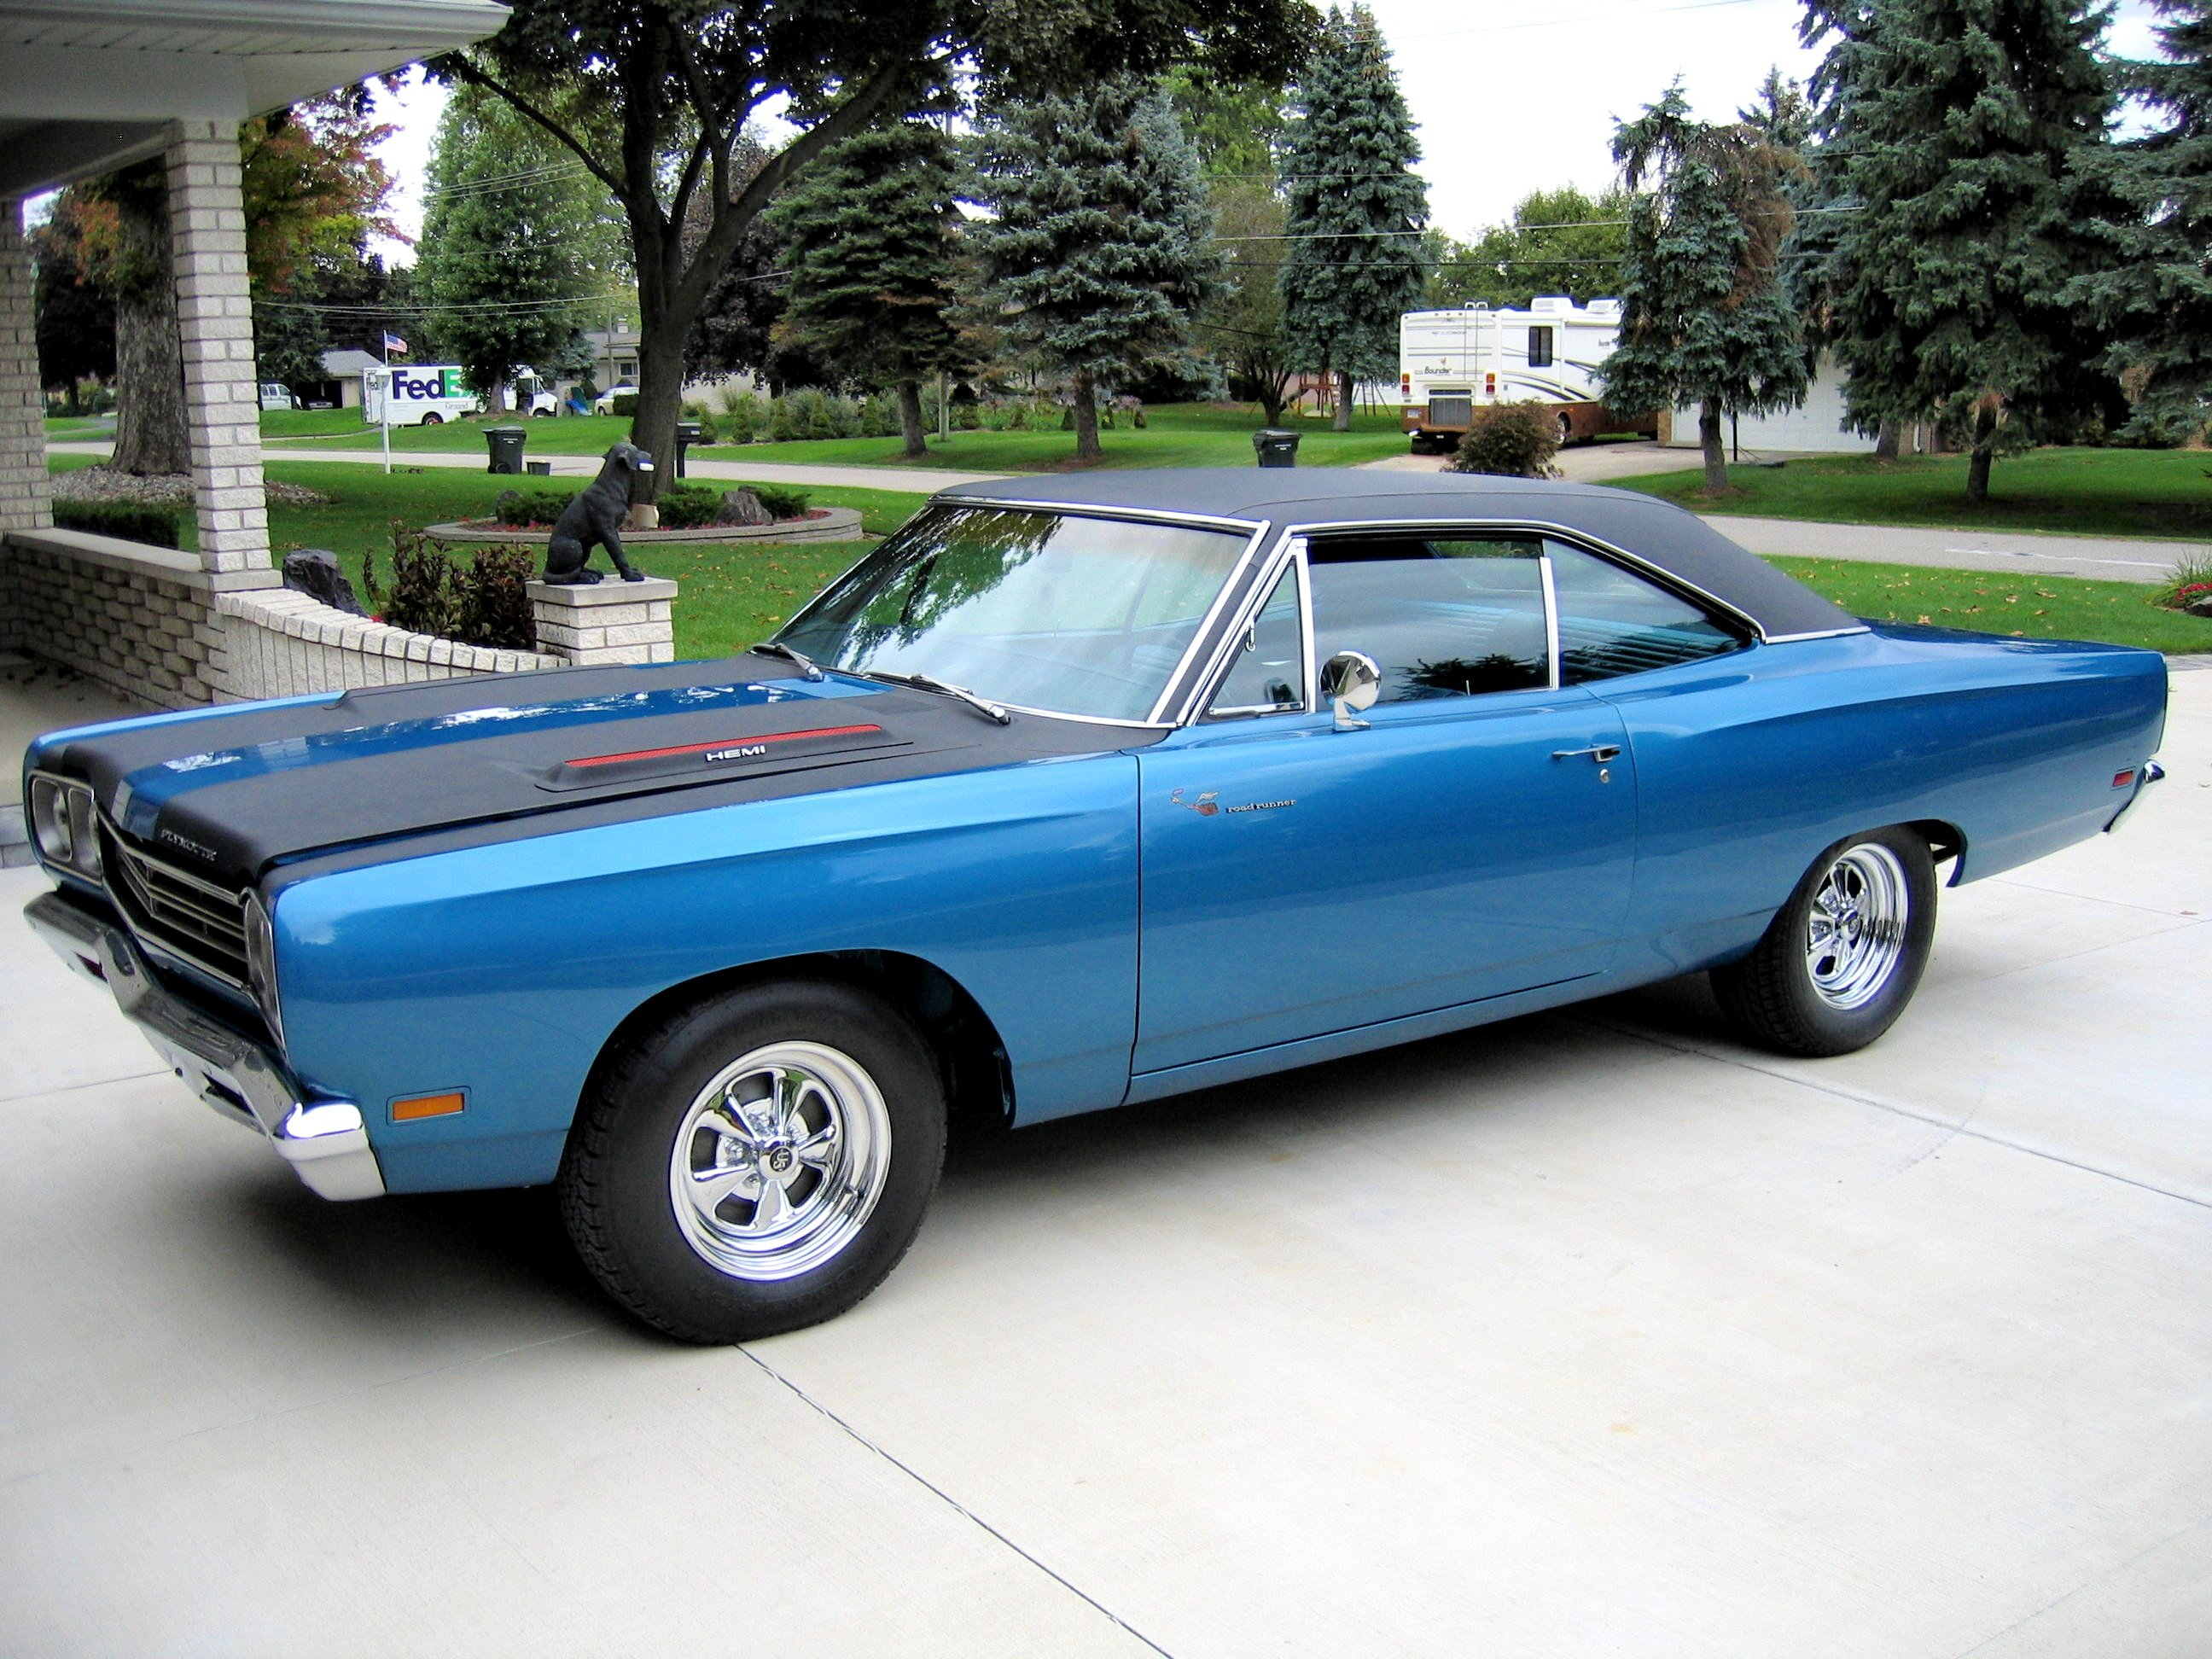 69 Plymouth Wiring Diagram Online Schematics Car Ac 1970 Road Runner Color Electrical 1954 Dodge